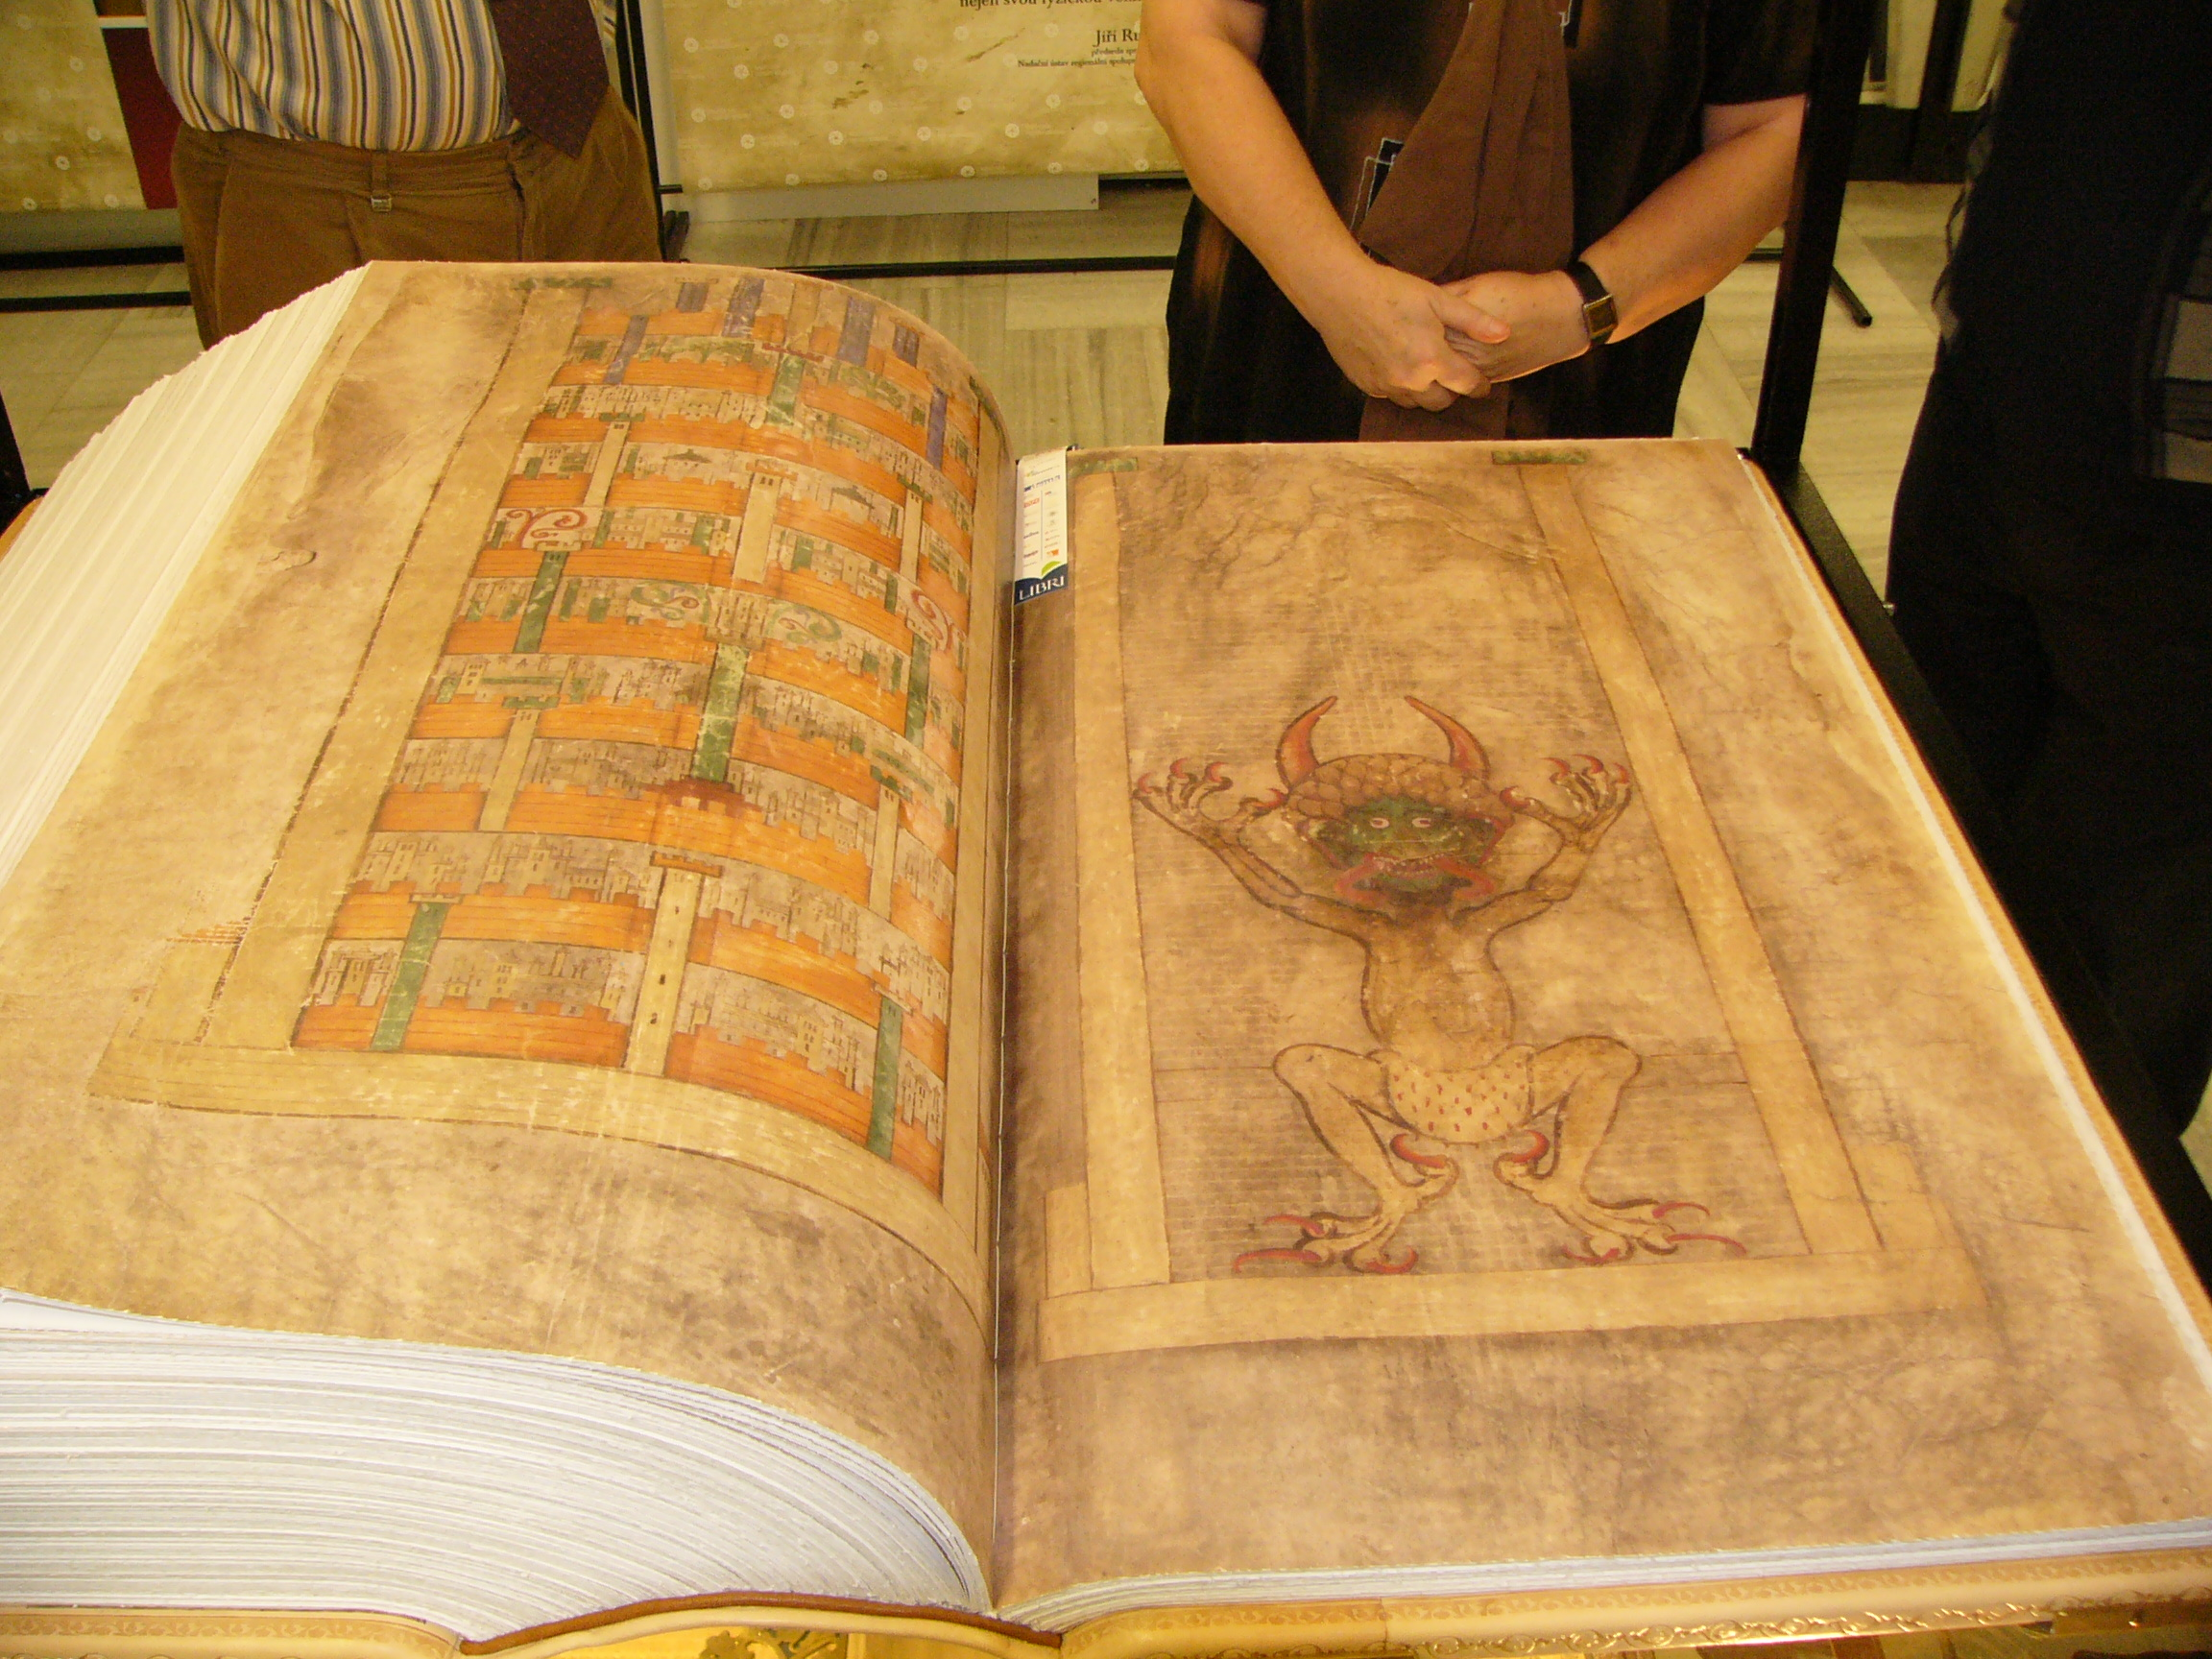 Codex Gigas facsimile (1)